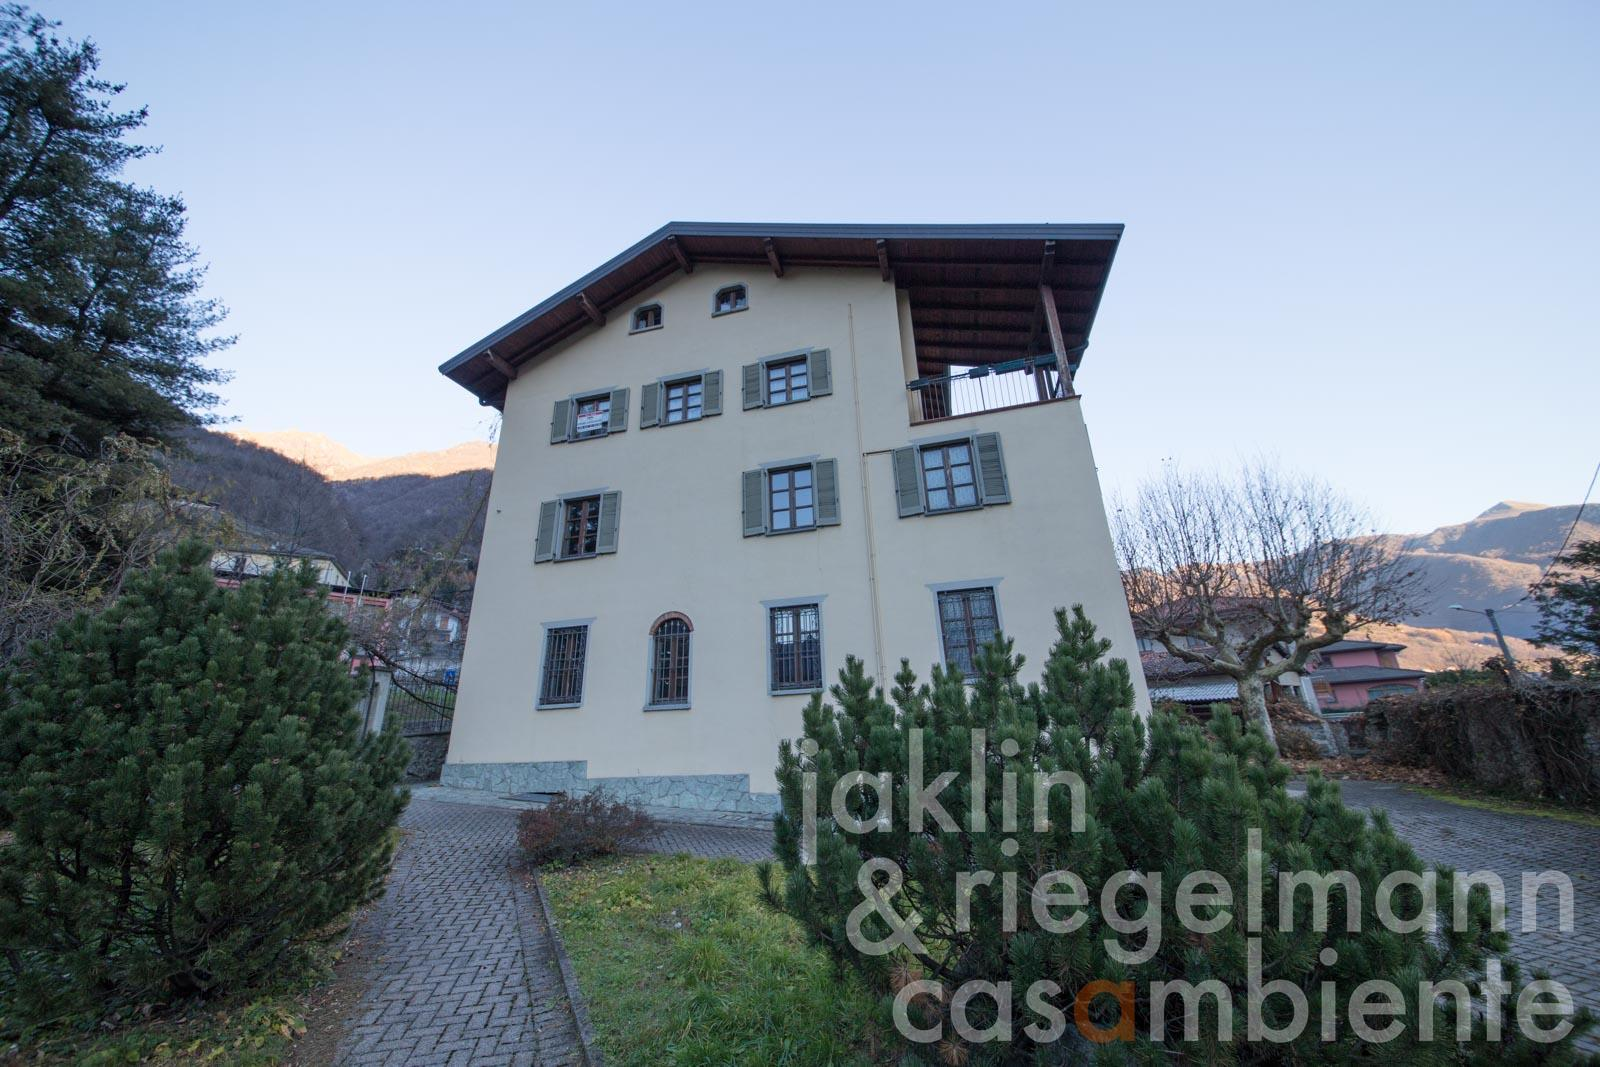 The former convent of the Ursulines with chapel for sale in the Valsassina valley close to Lake Como